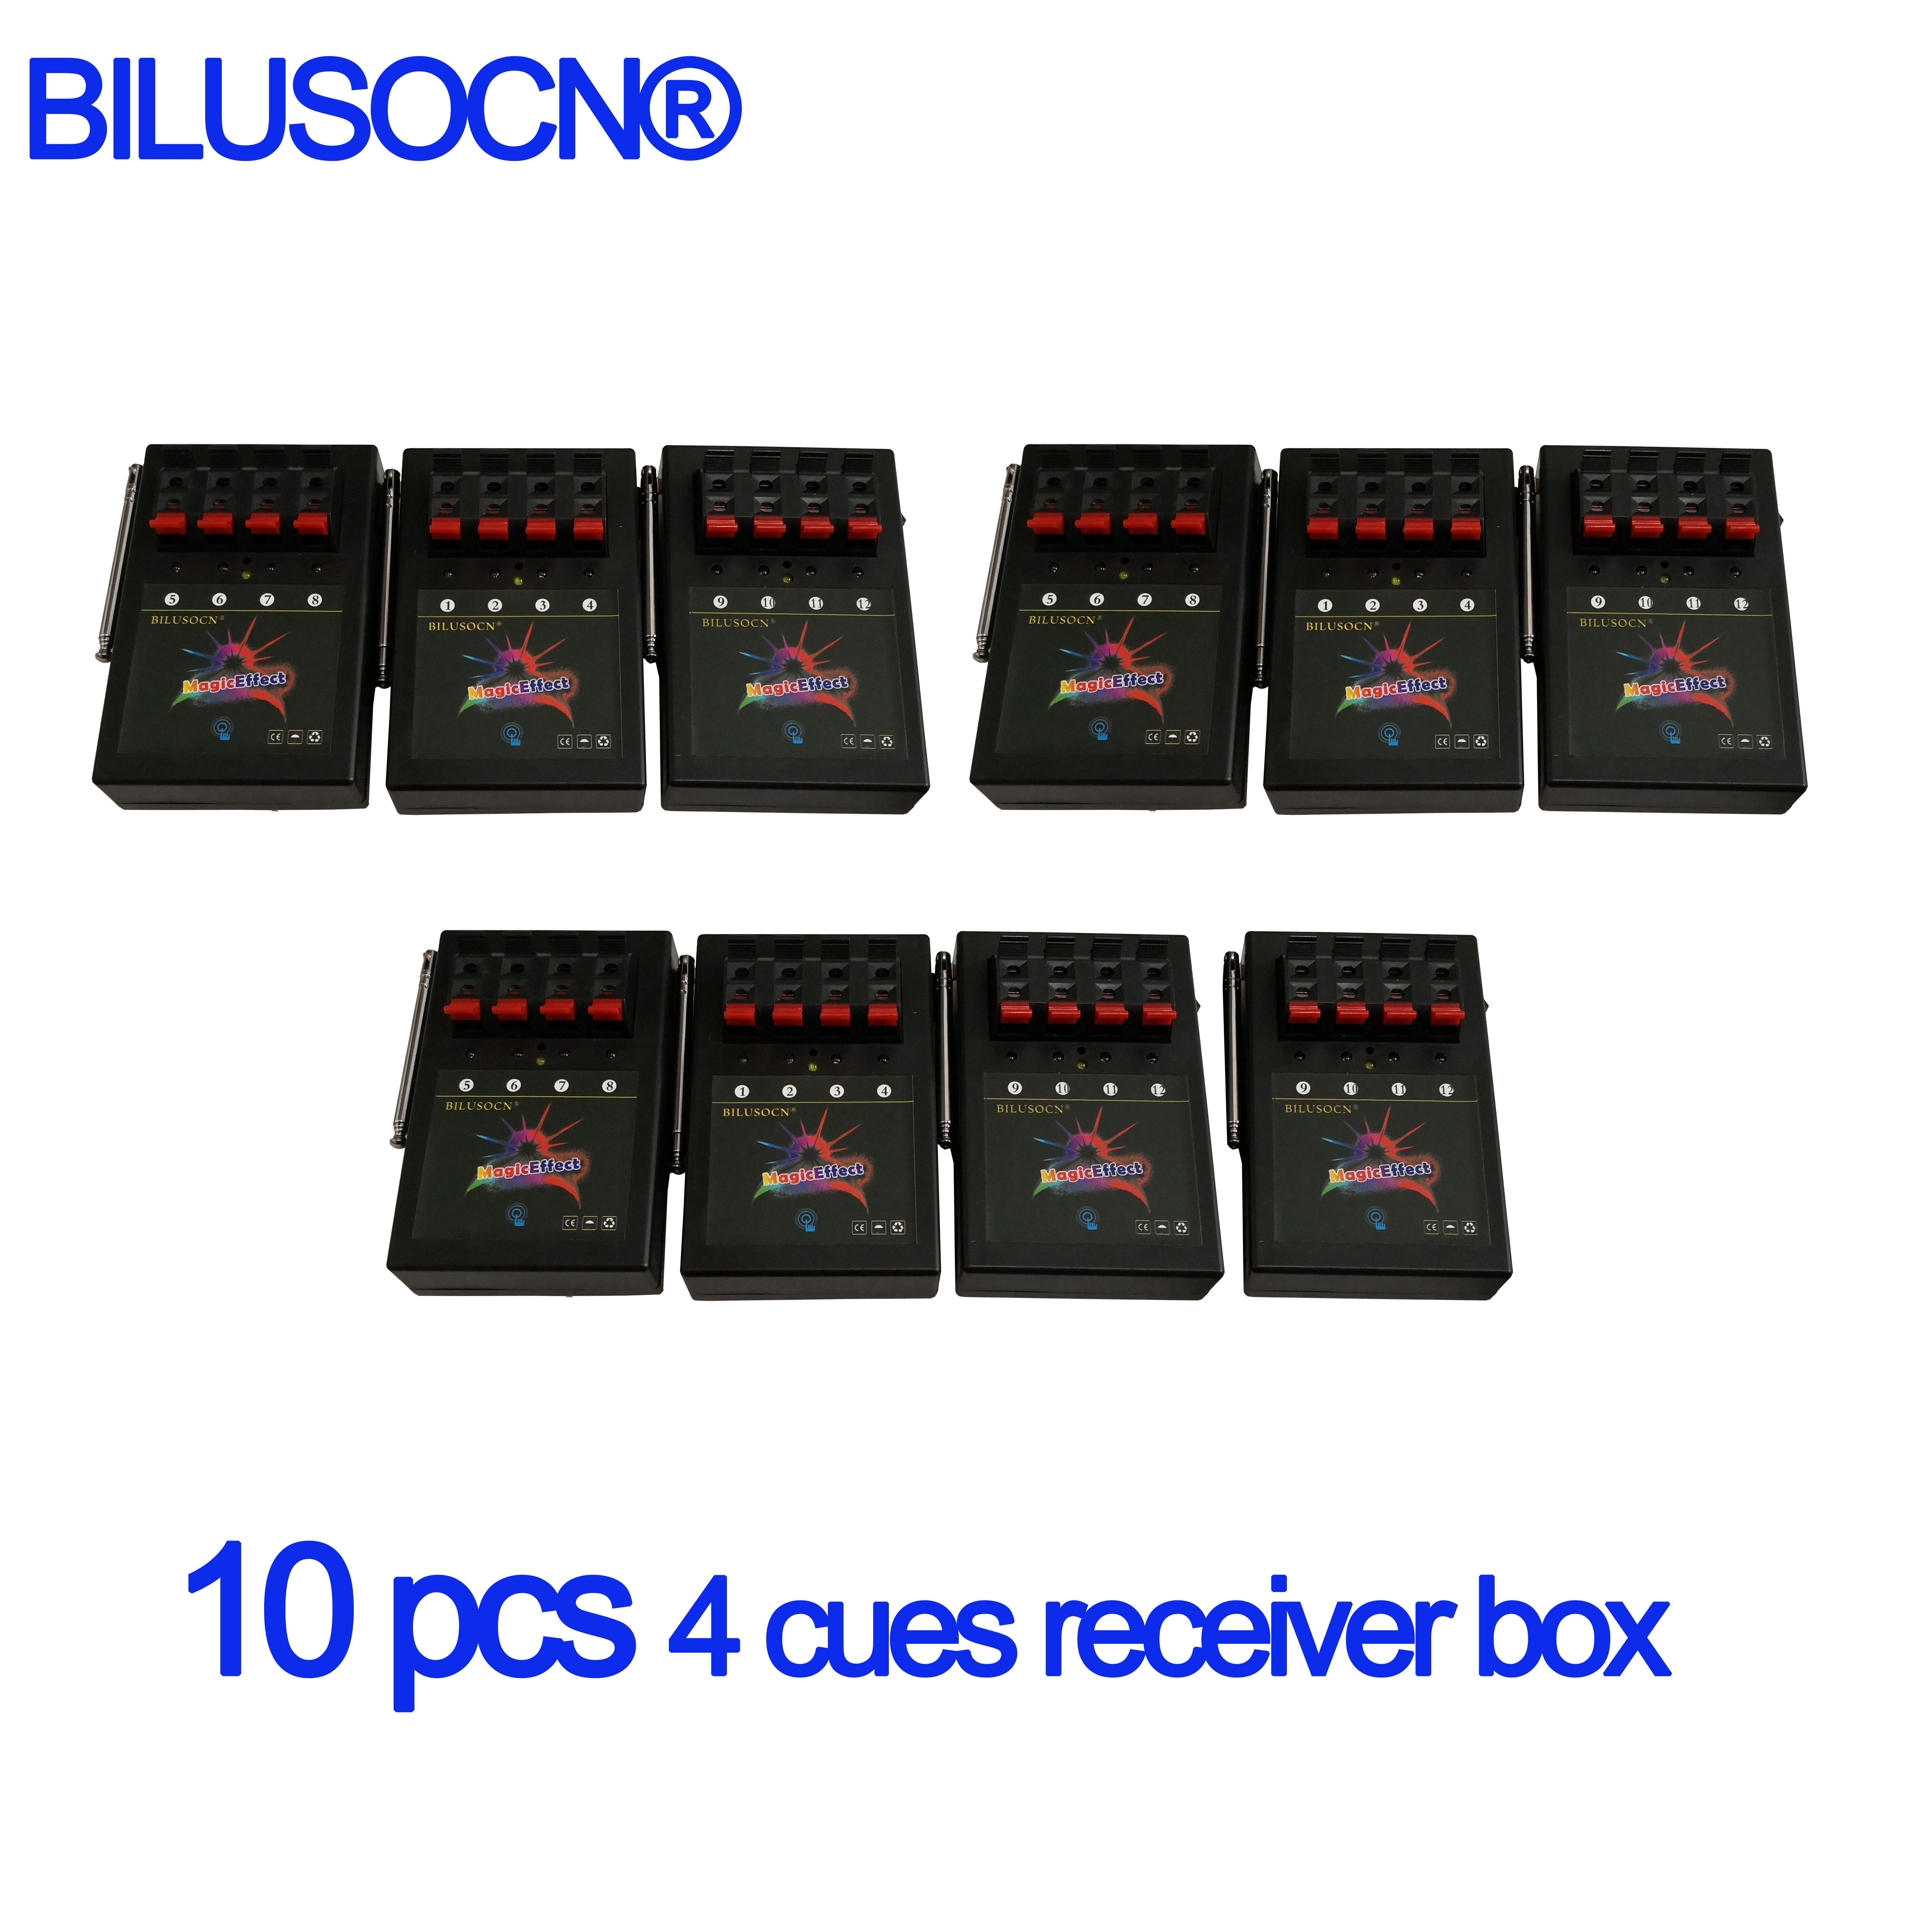 10 PCS 4 cues receiver box 433MHZ for fireworks firing system